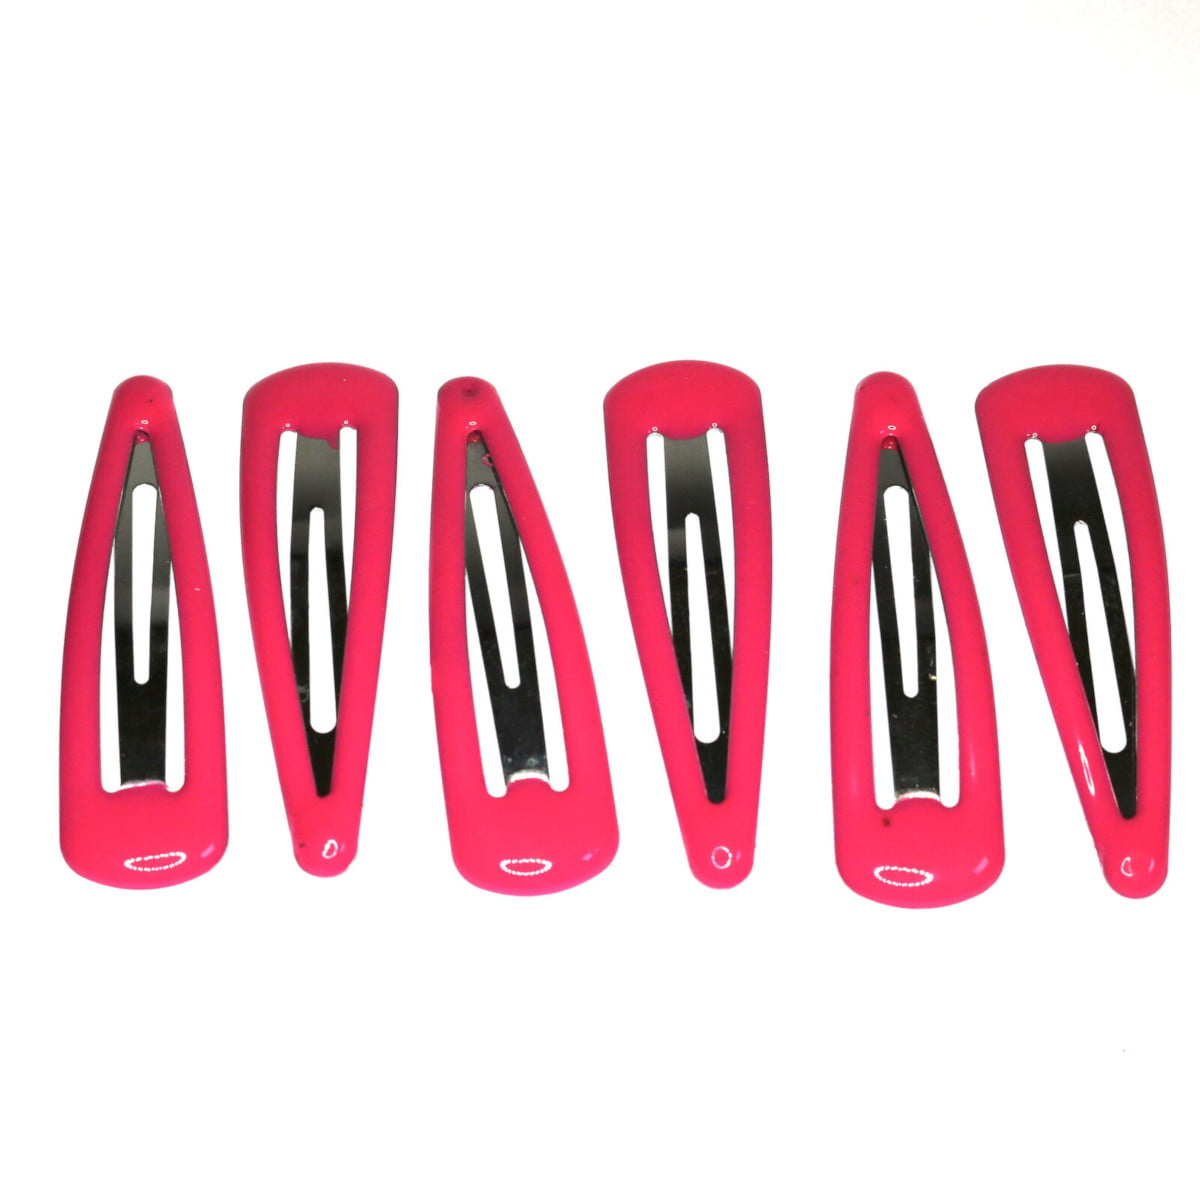 Pink metal hair clips with plastic coating.